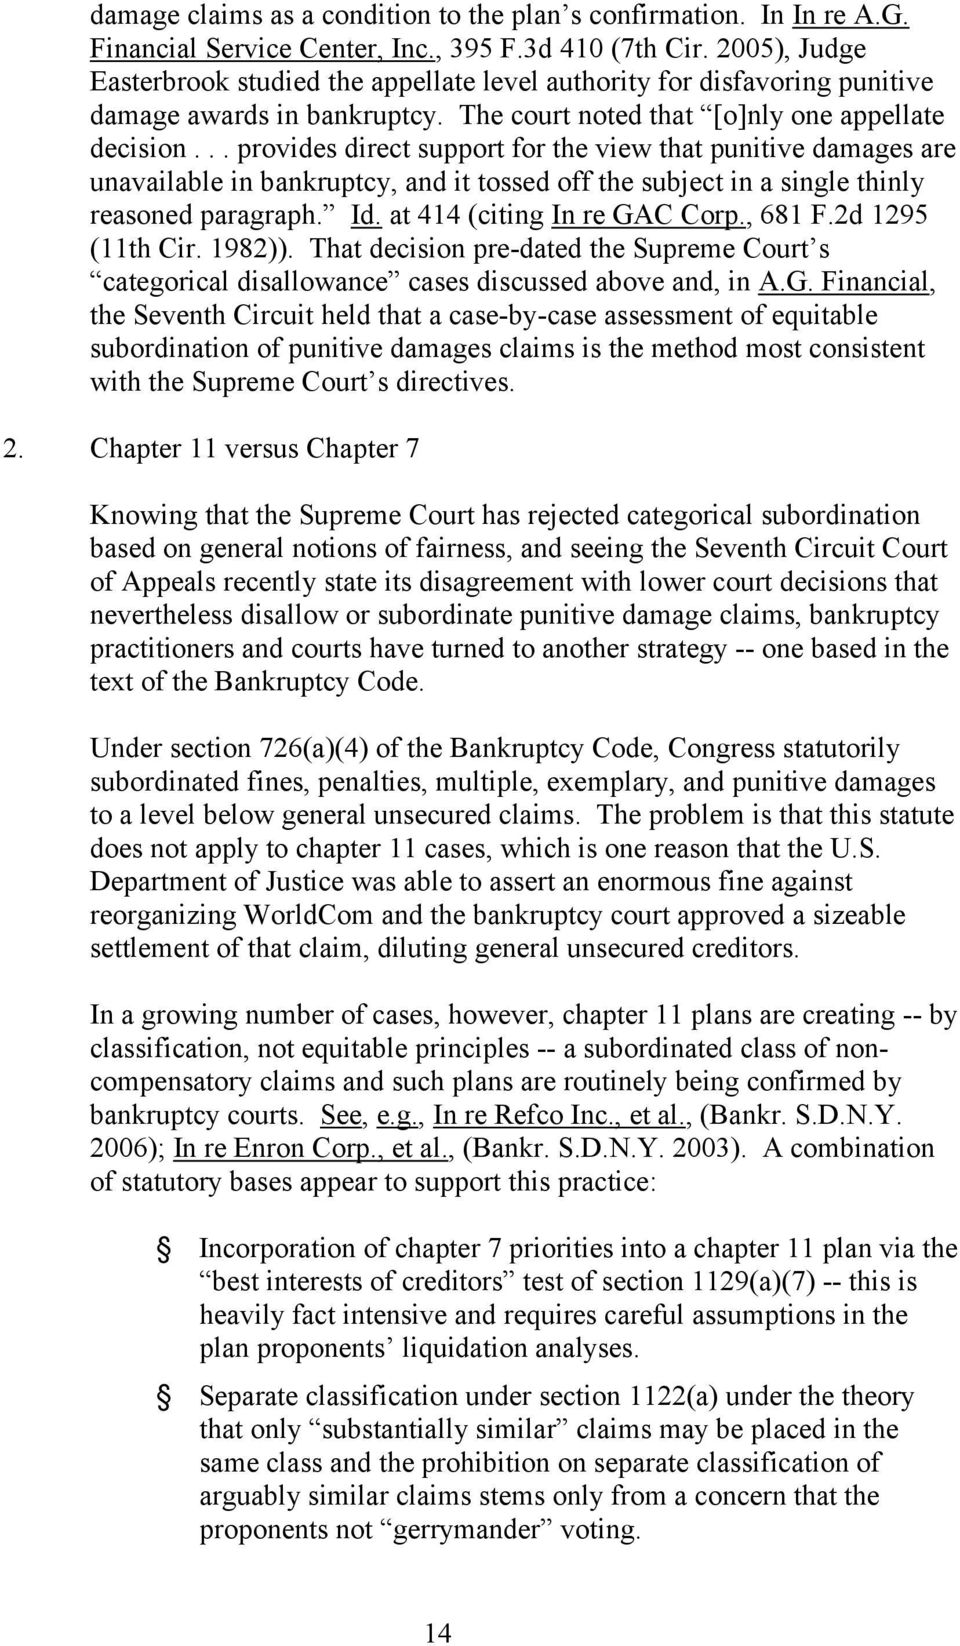 .. provides direct support for the view that punitive damages are unavailable in bankruptcy, and it tossed off the subject in a single thinly reasoned paragraph. Id. at 414 (citing In re GAC Corp.